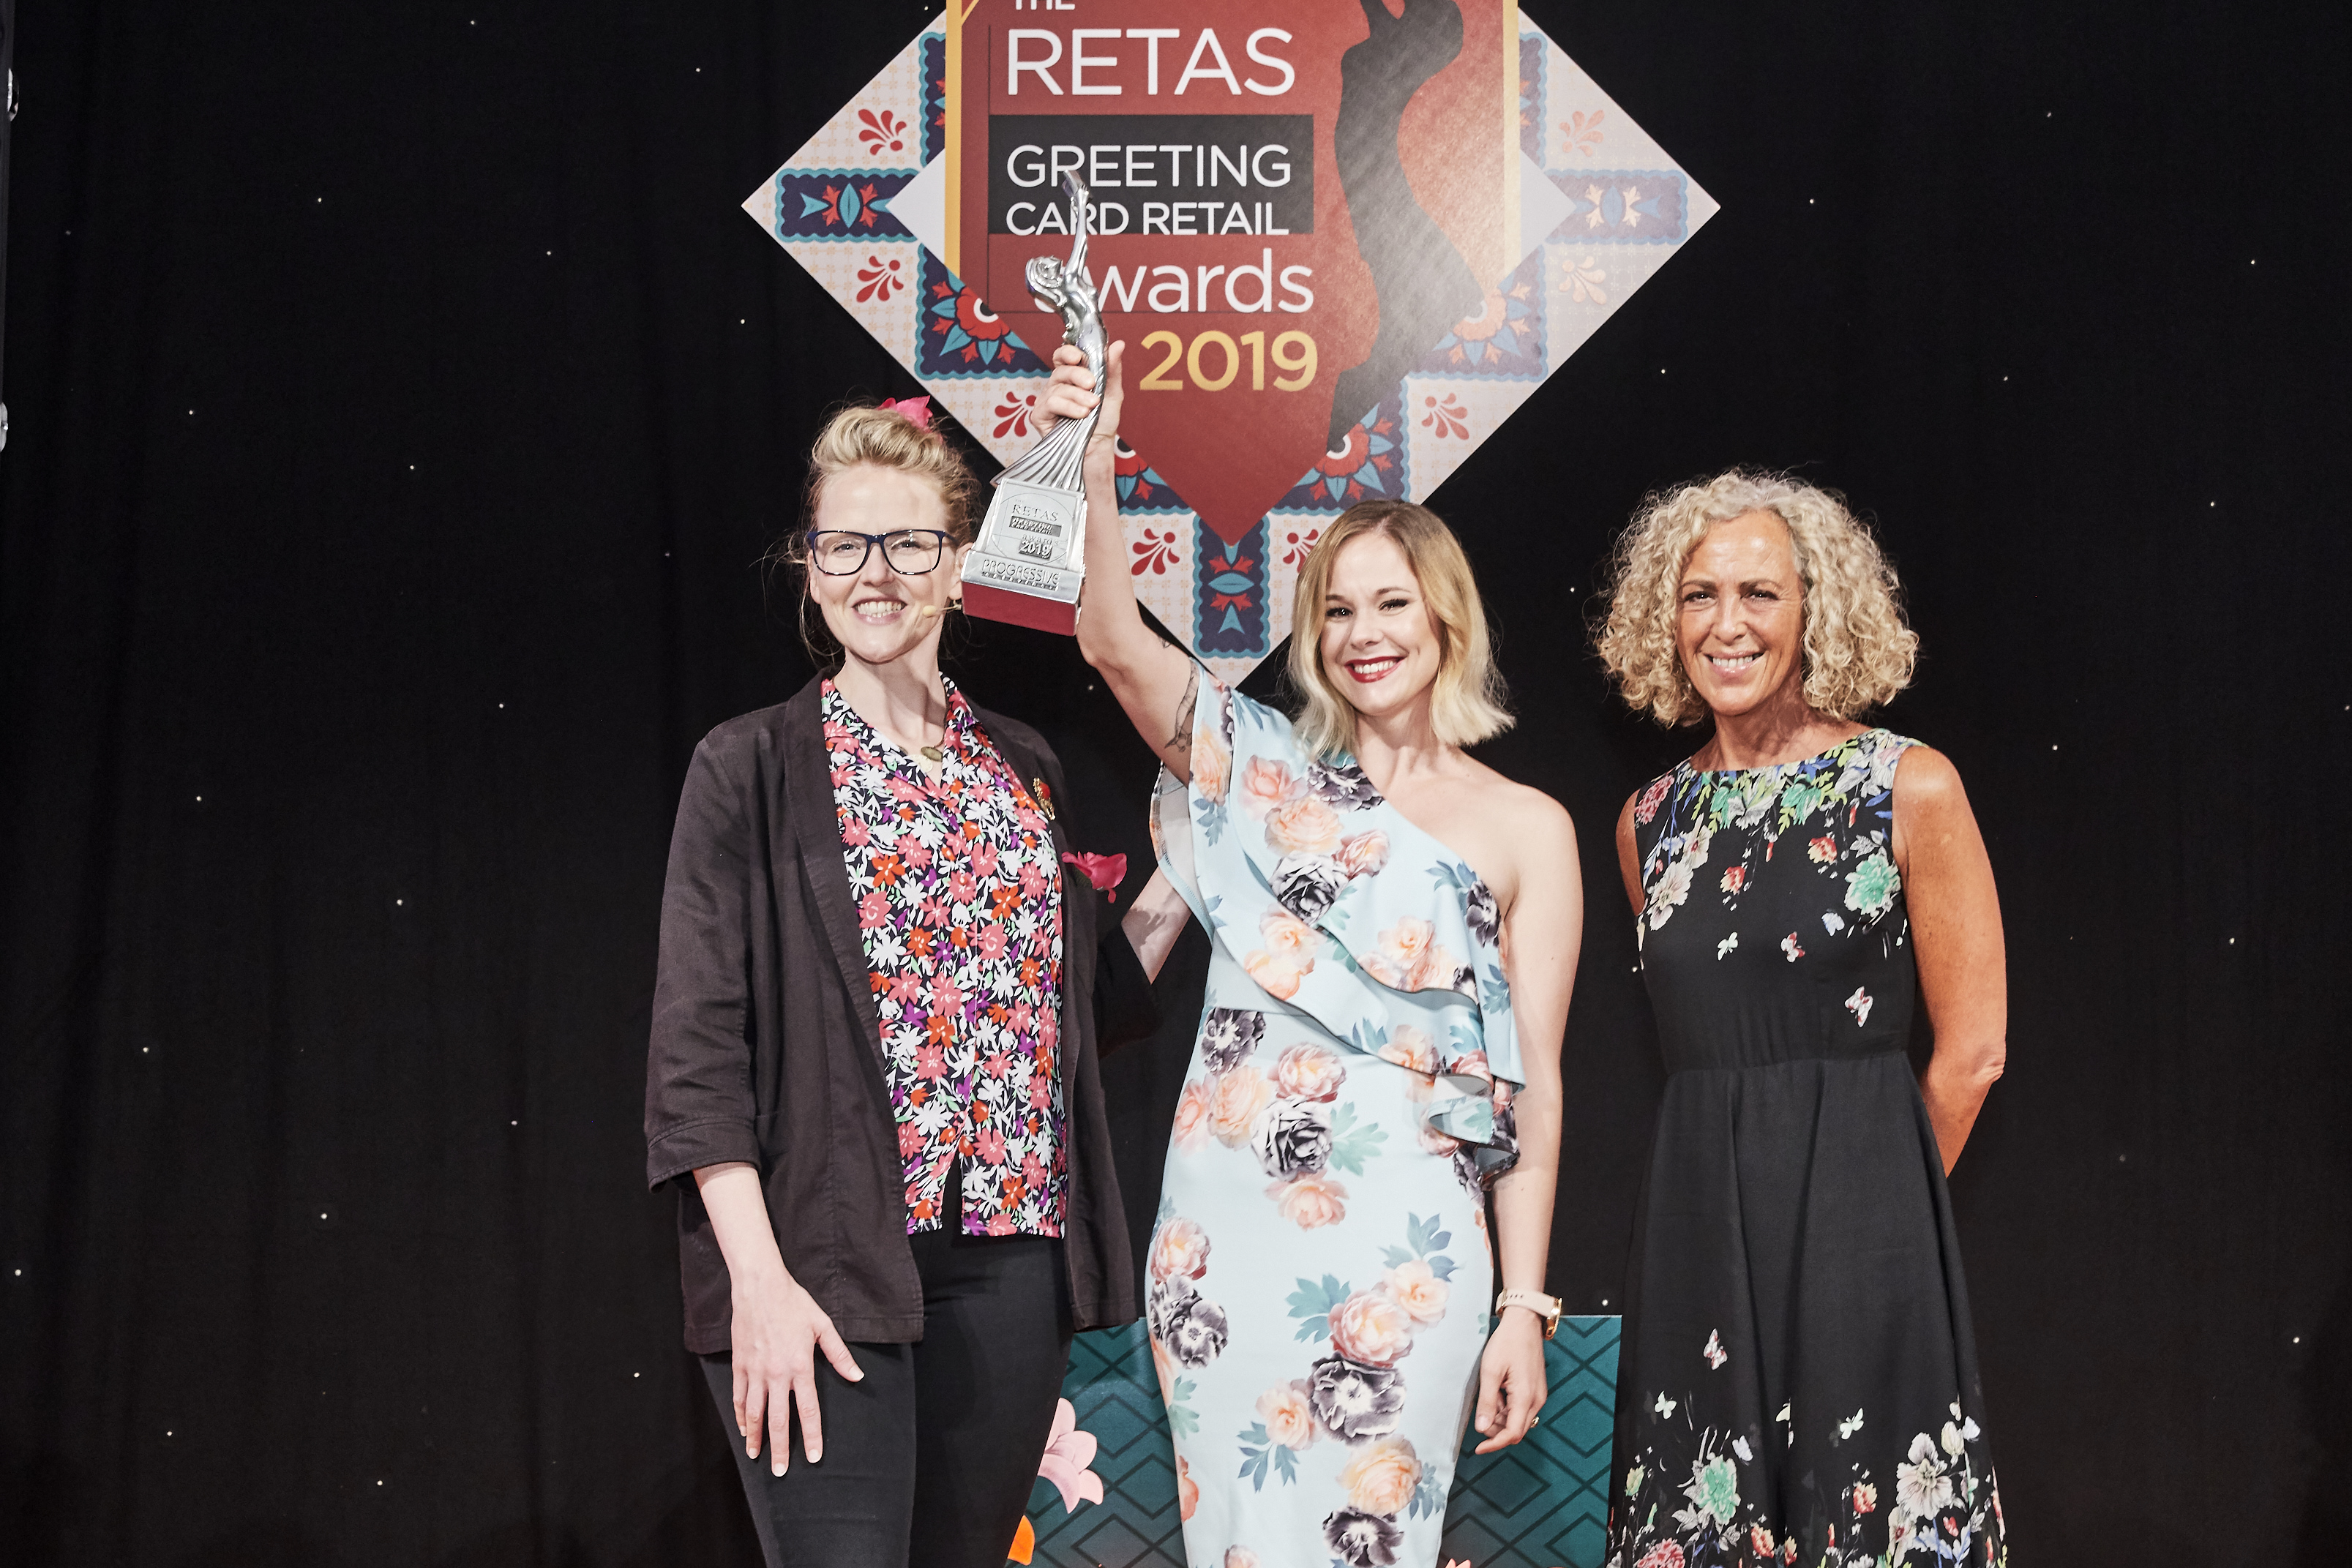 Above: Angie Goosen, category manager – paper products for Blue Diamond Group, wins The Retas double accolade and accepted the Greeting Card Retailer of the Year award from Karen Mace, joint owner of category sponsor, The Art File.